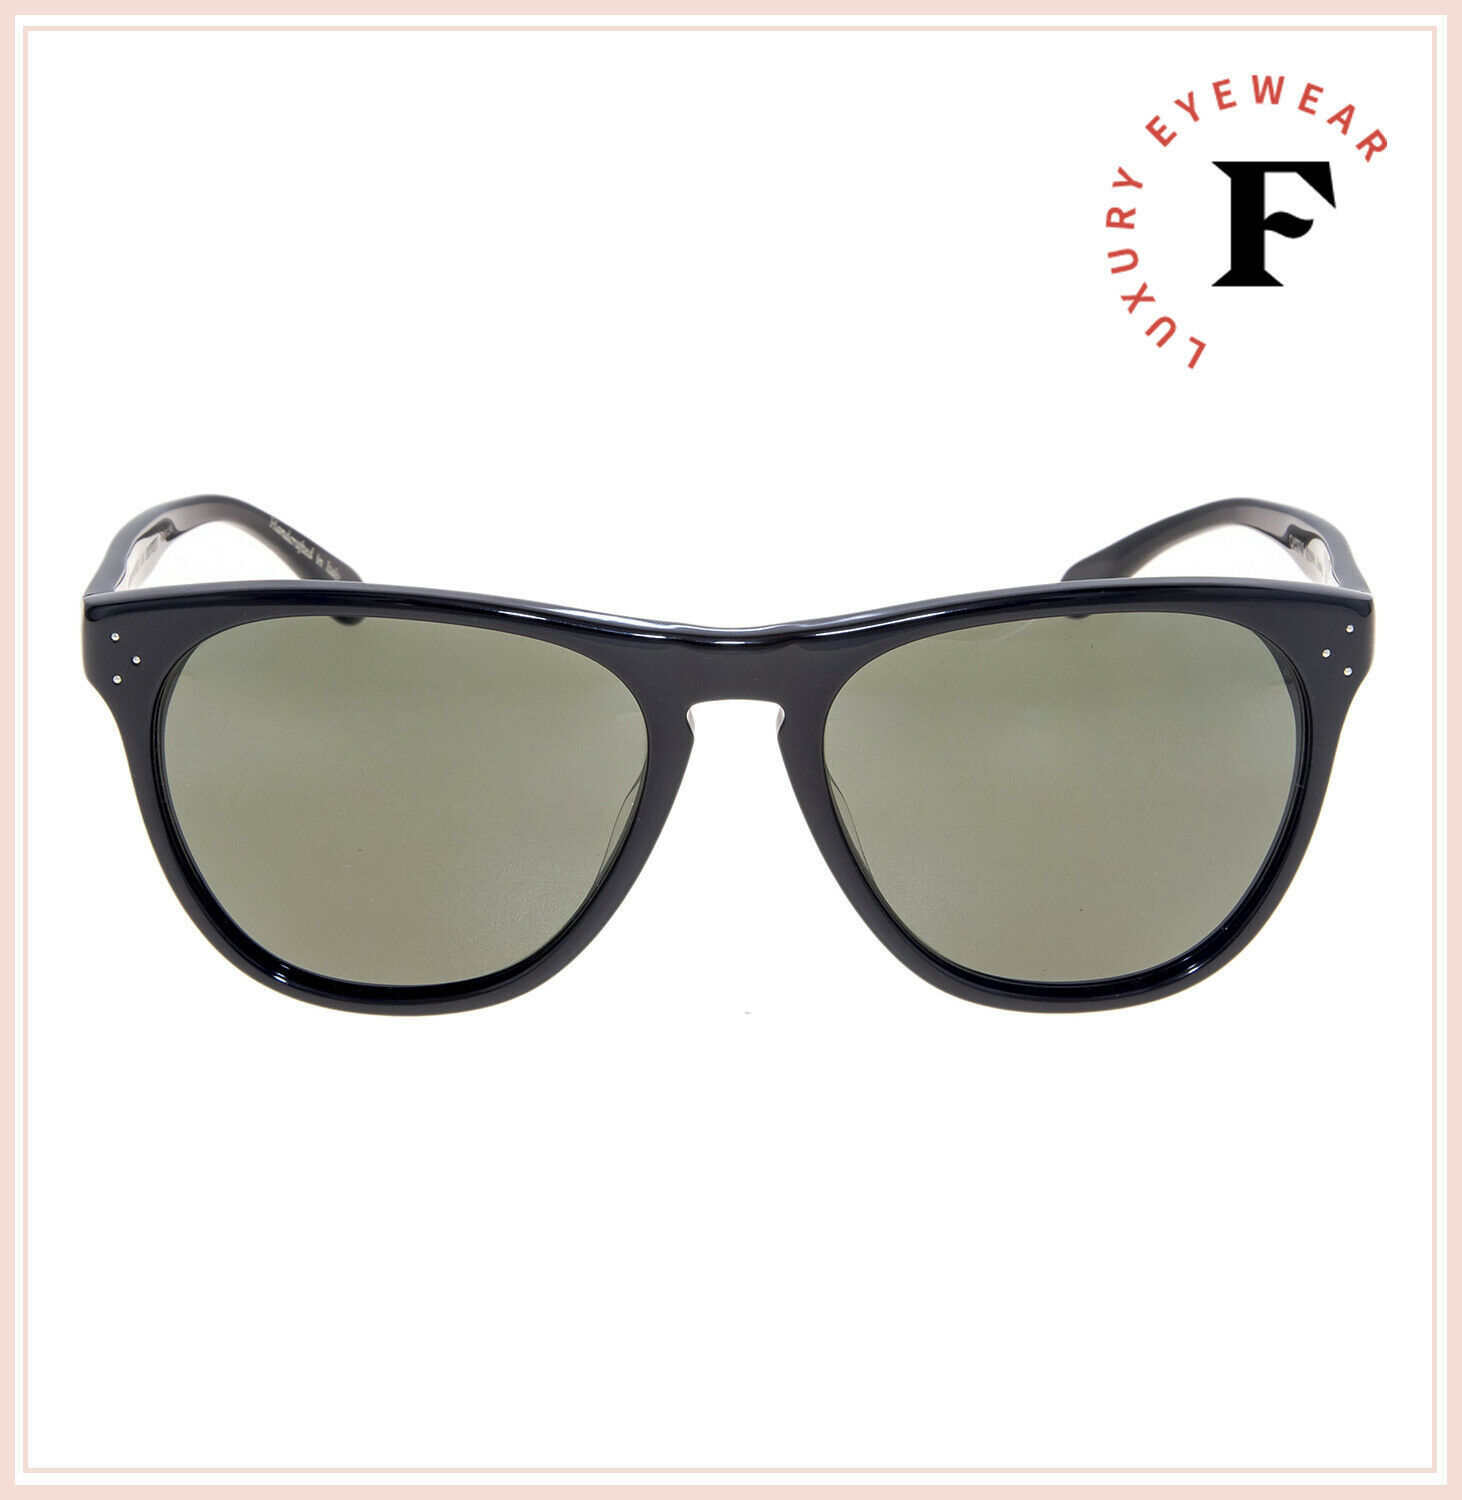 Oliver Peoples 5091 DADDY B Black Green Polarized Vintage Sunglasses OV5091S image 3